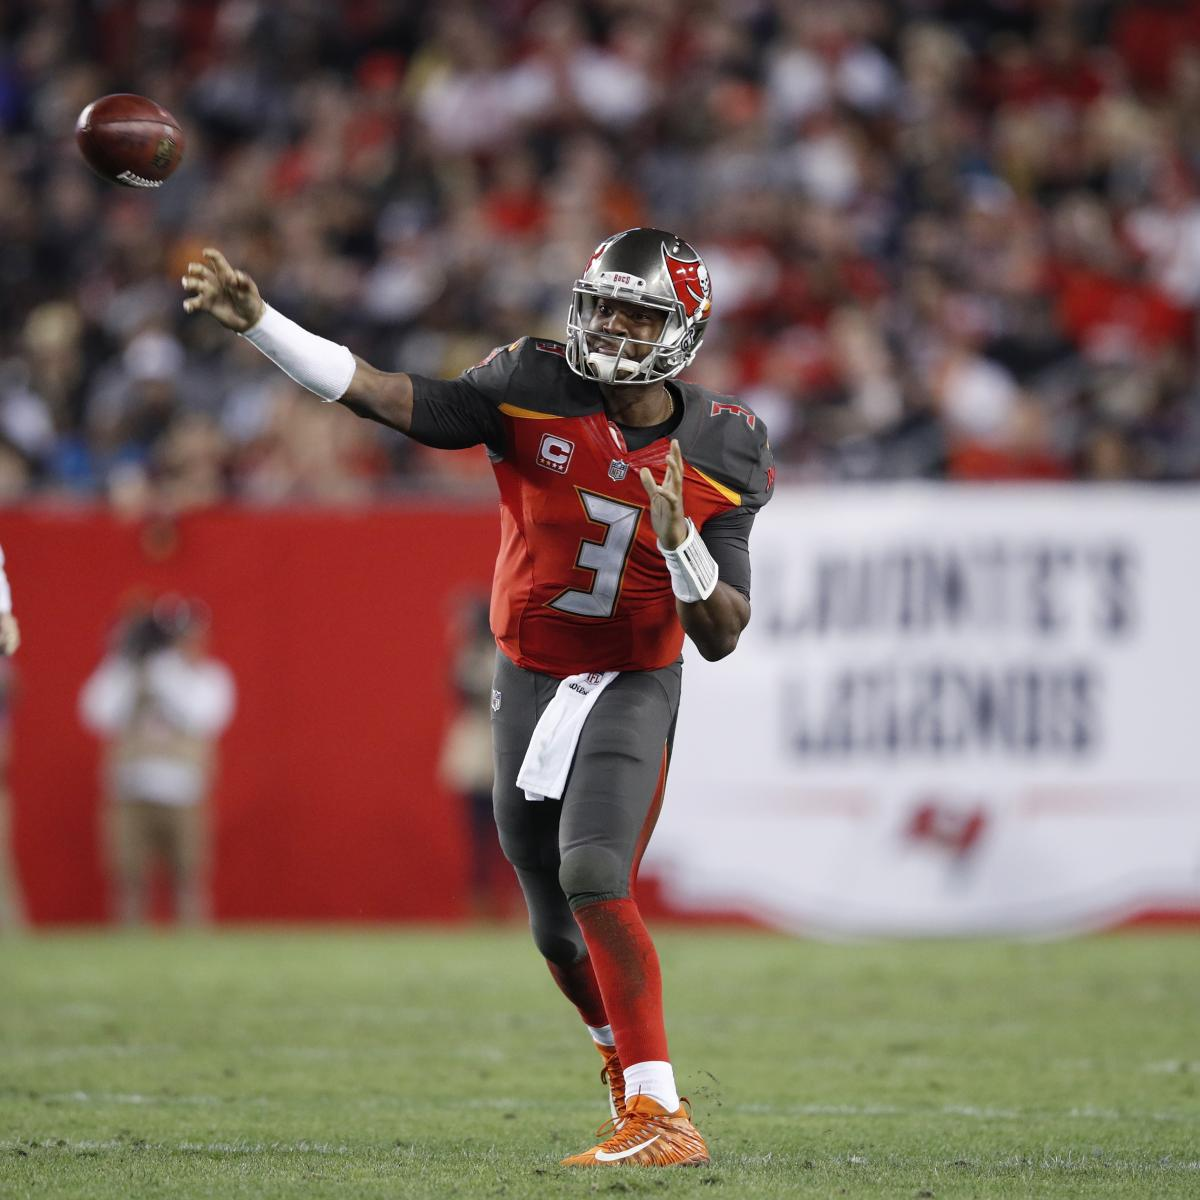 Jameis Winston Says NFL Hasn't Interviewed Him About Groping Accusation